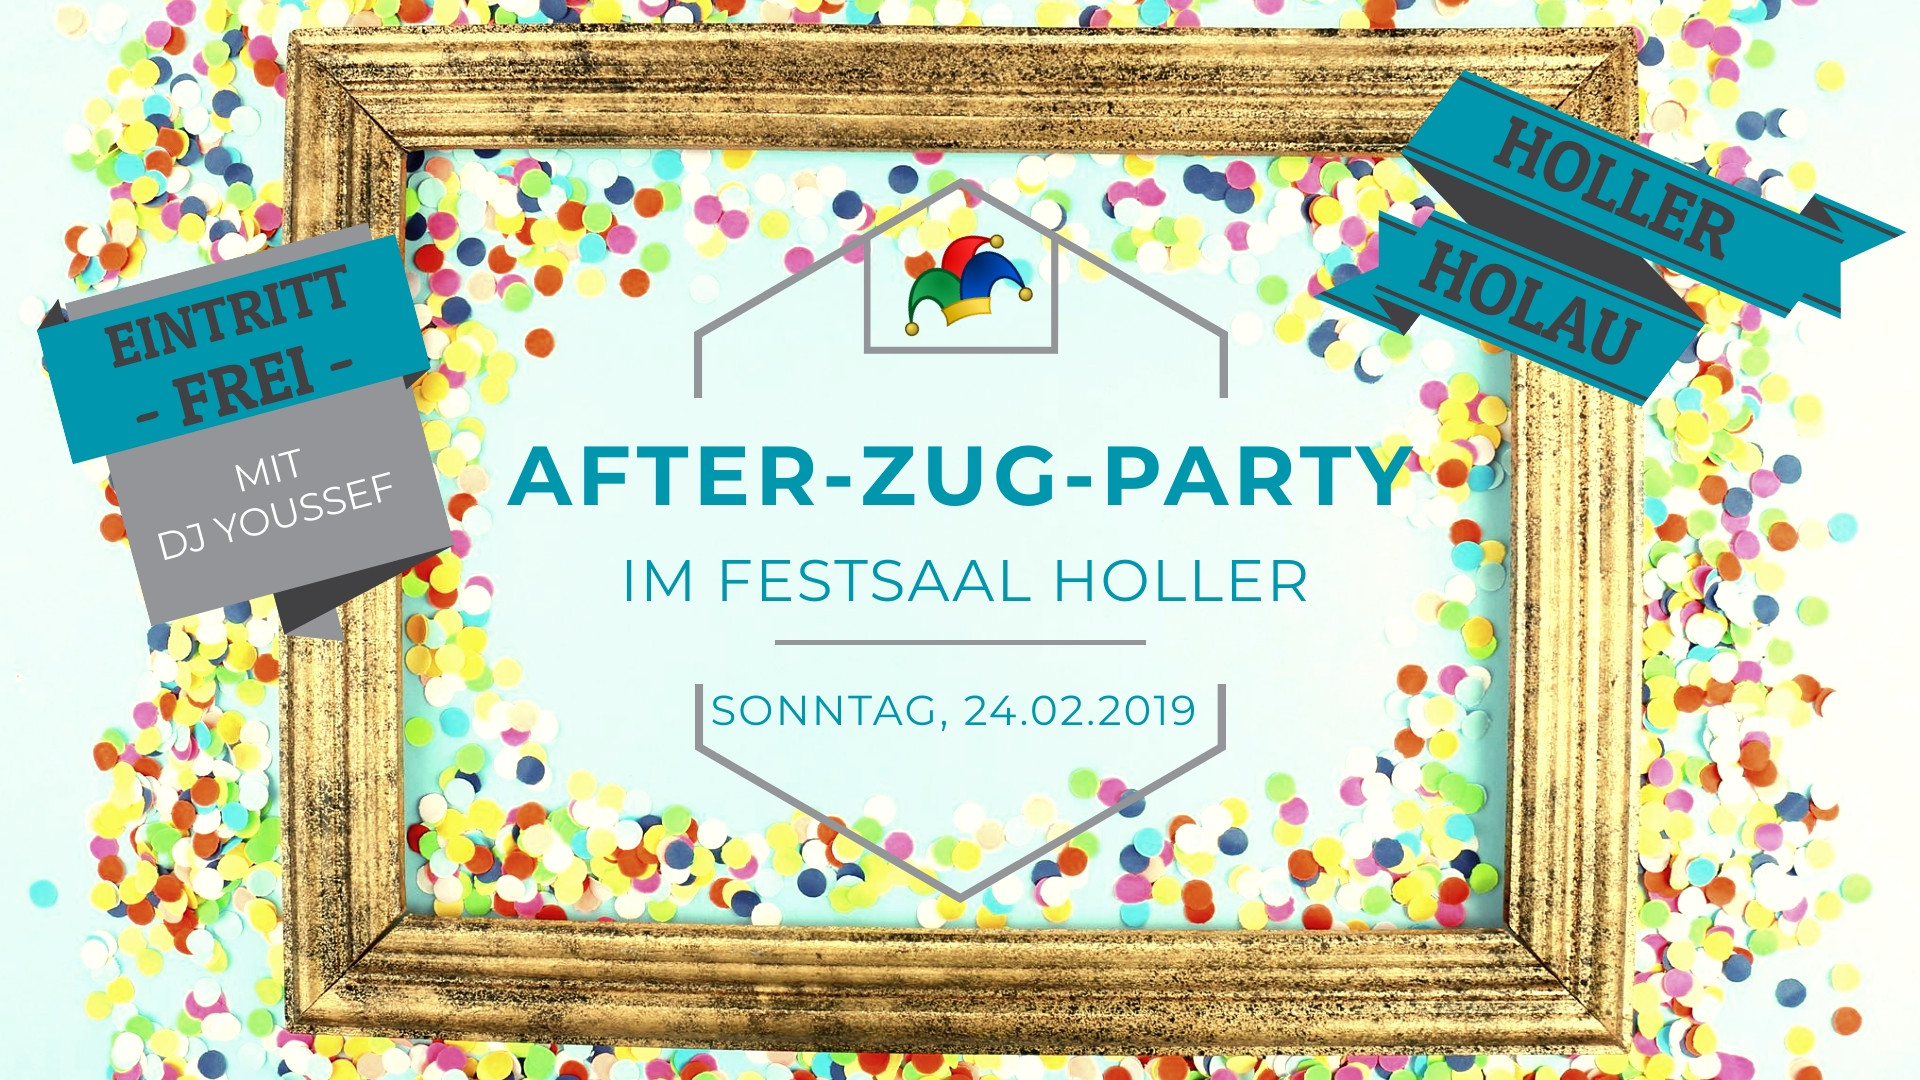 AFTER-ZUG-PARTY 2019